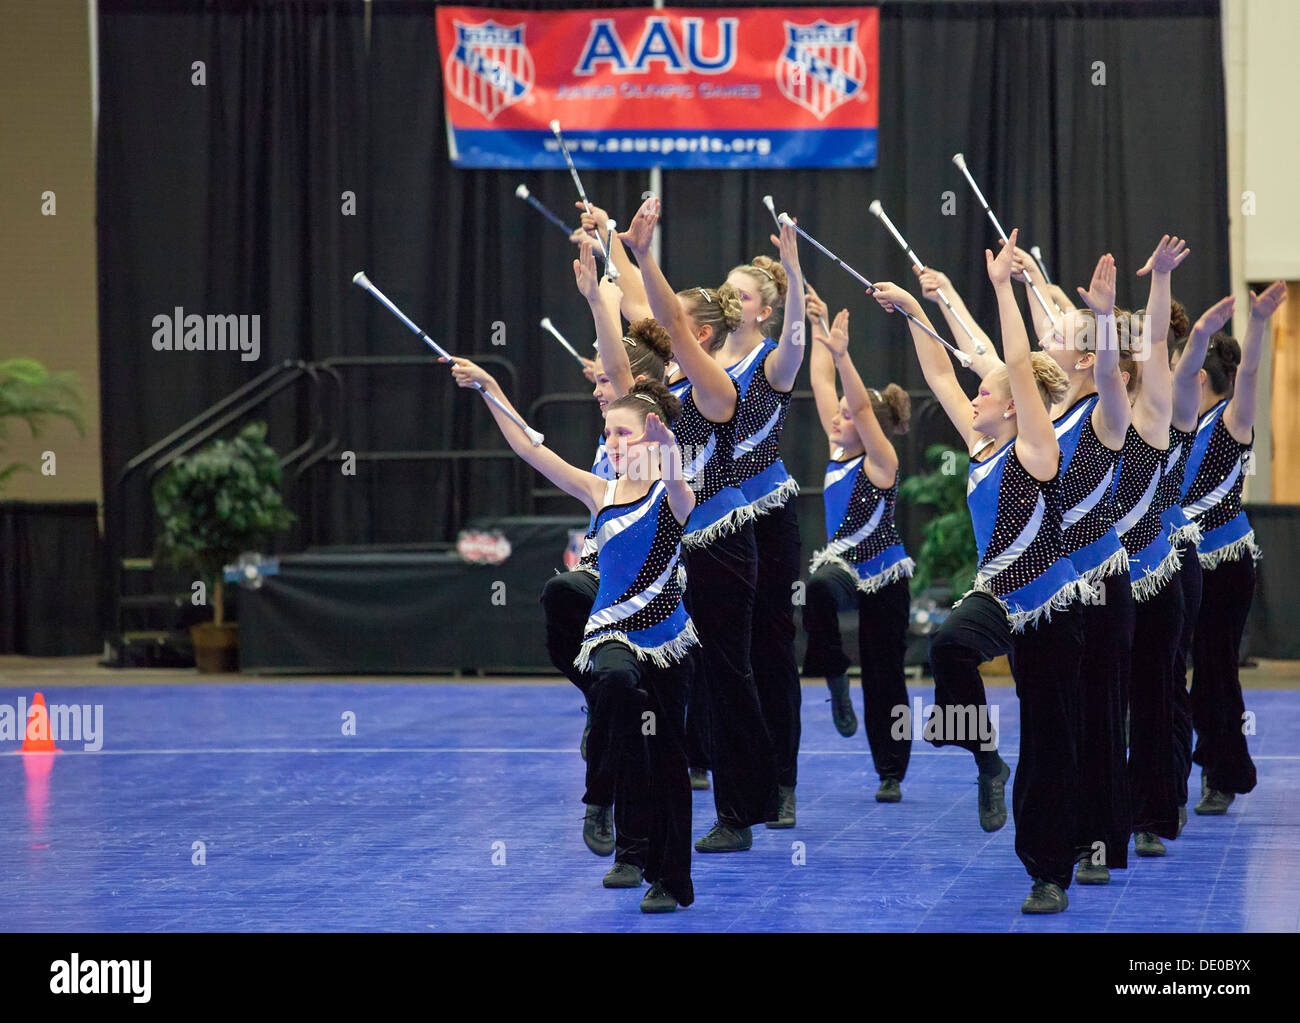 Detroit, Michigan - Baton twirling competition at the AAU Junior Olympic Games. - Stock Image